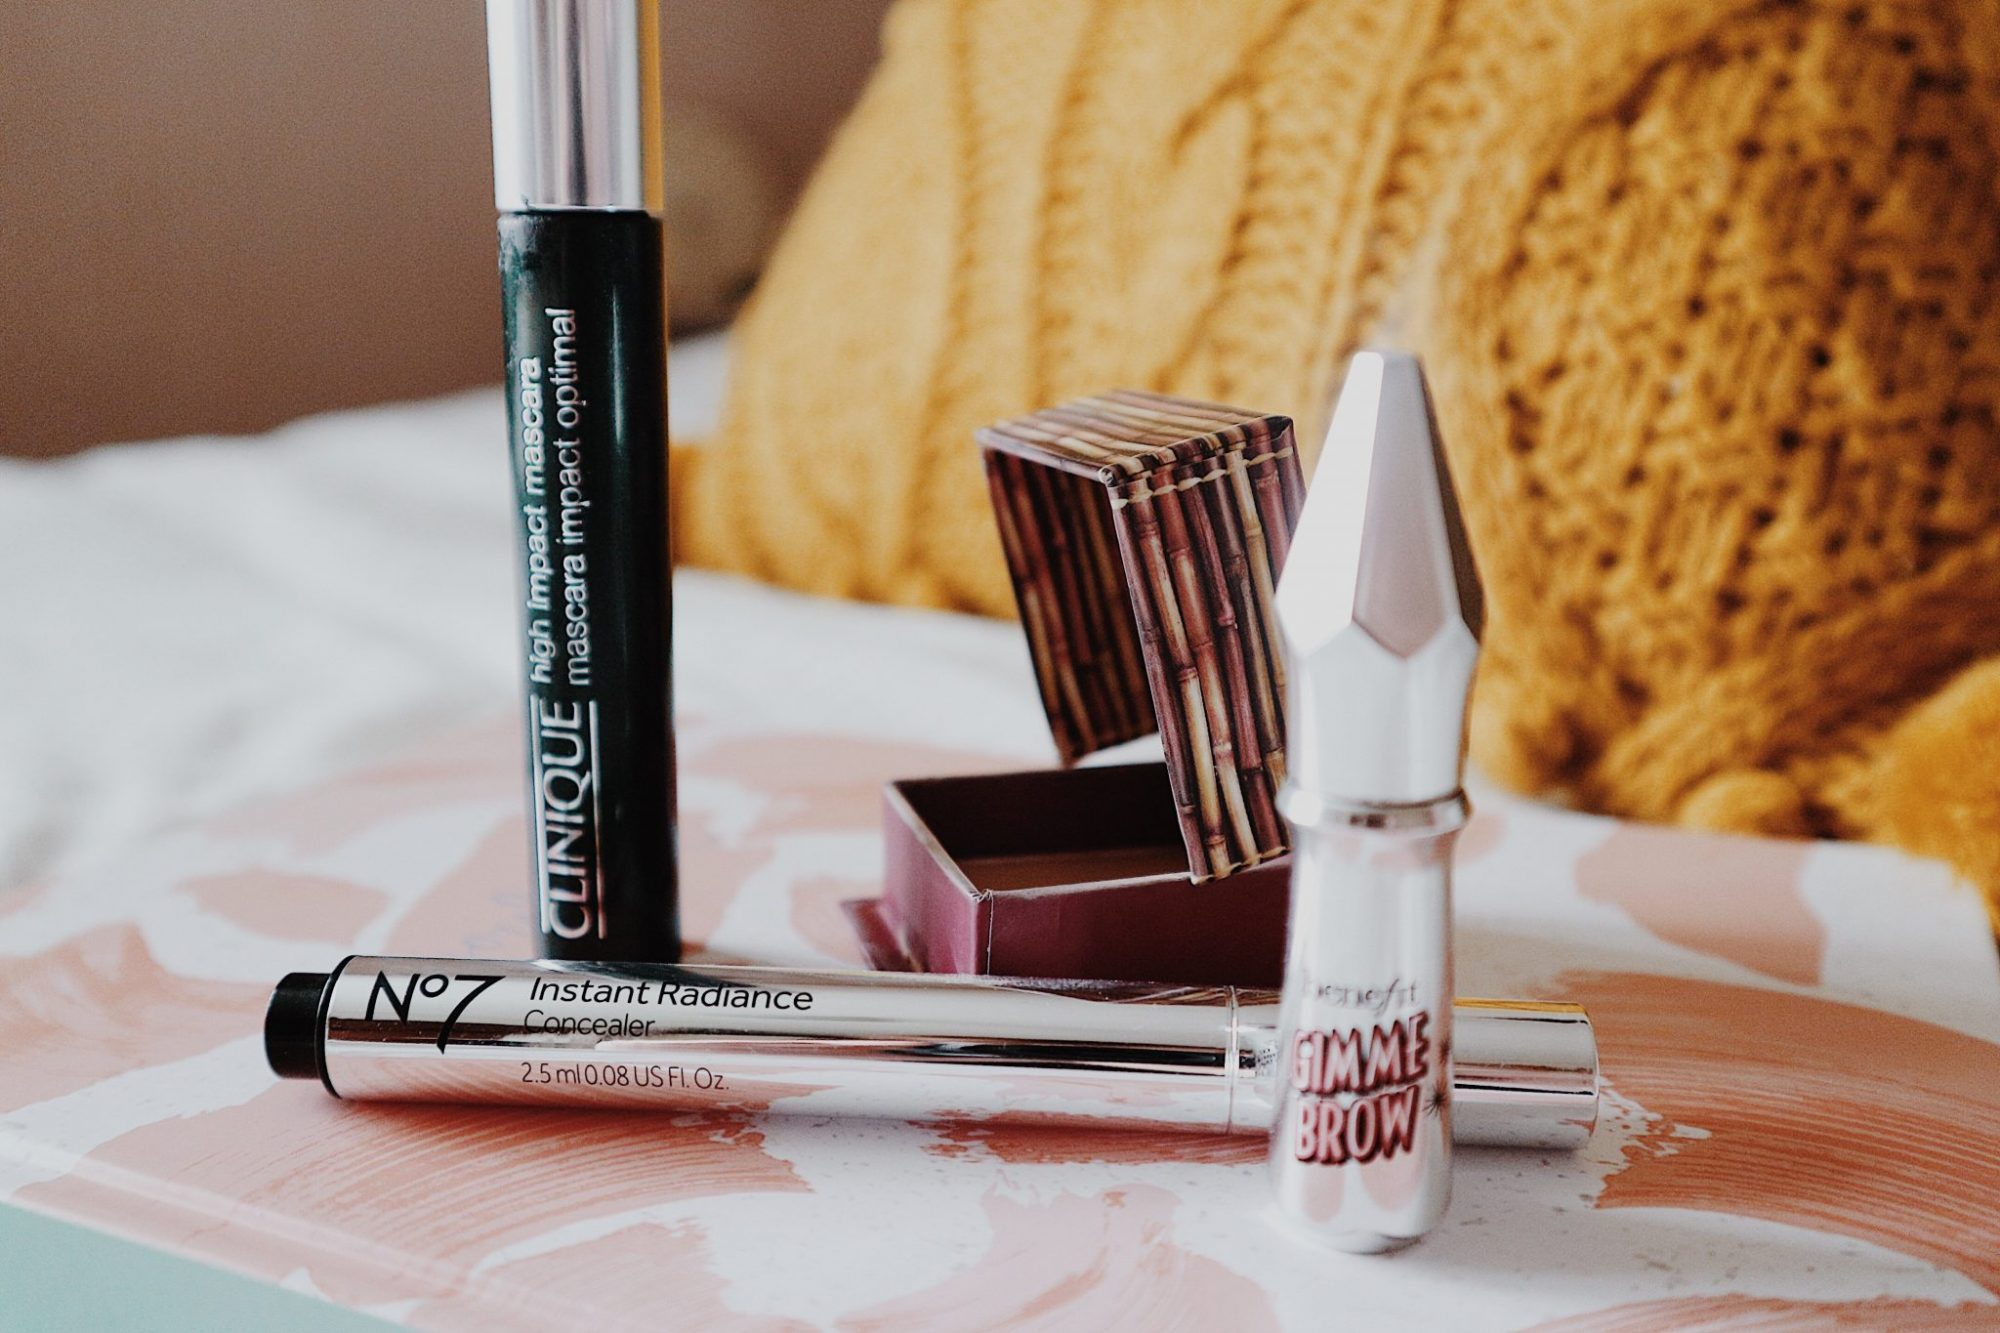 Clinique High Impact Mascara + No7 Instant Radiance Concealer + Benefit Hoola Bronzer + Benefit Gimme Brow | Beauty | Makeup